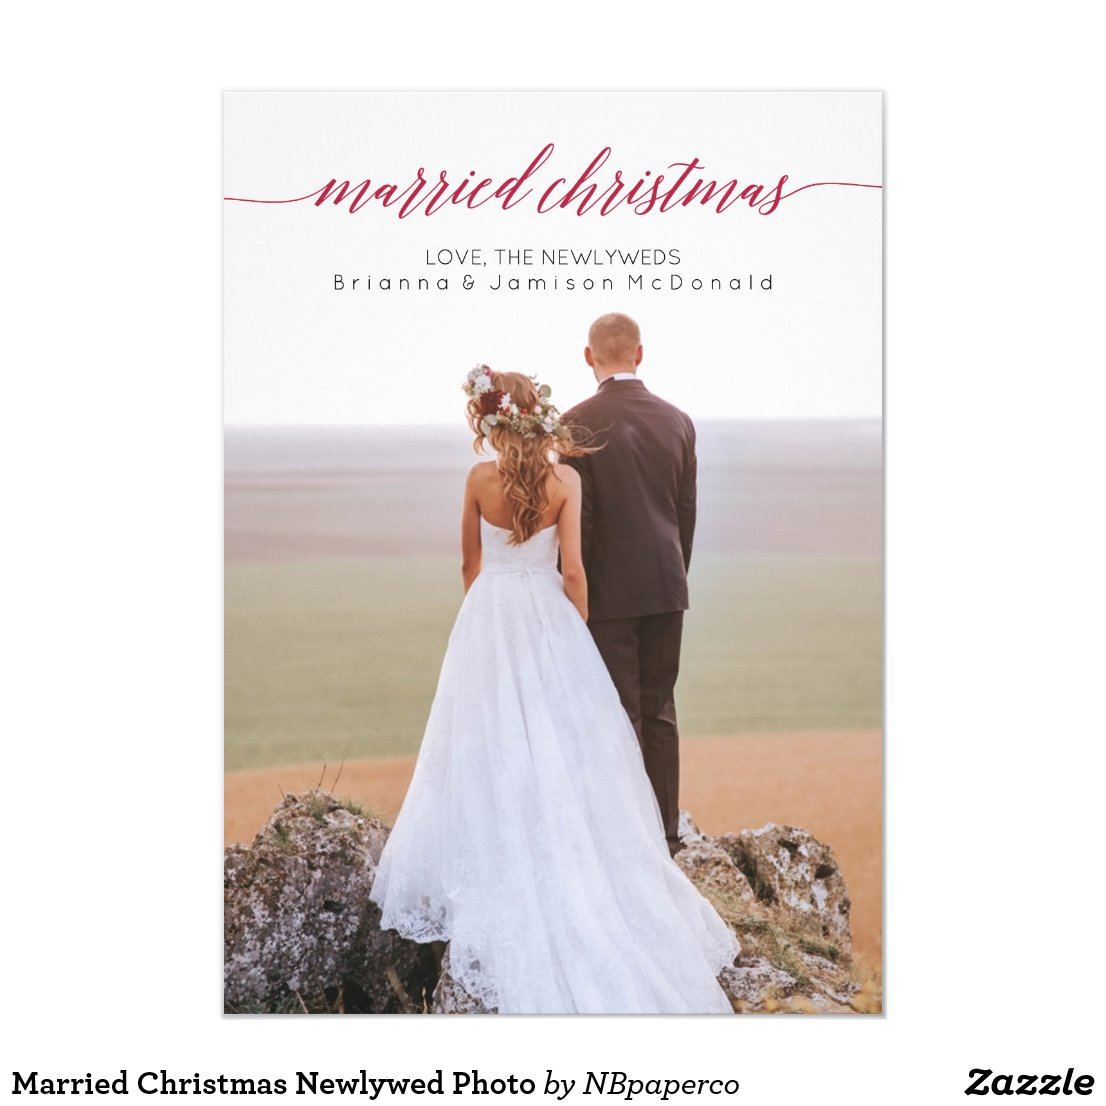 Married Christmas Newlywed Photo